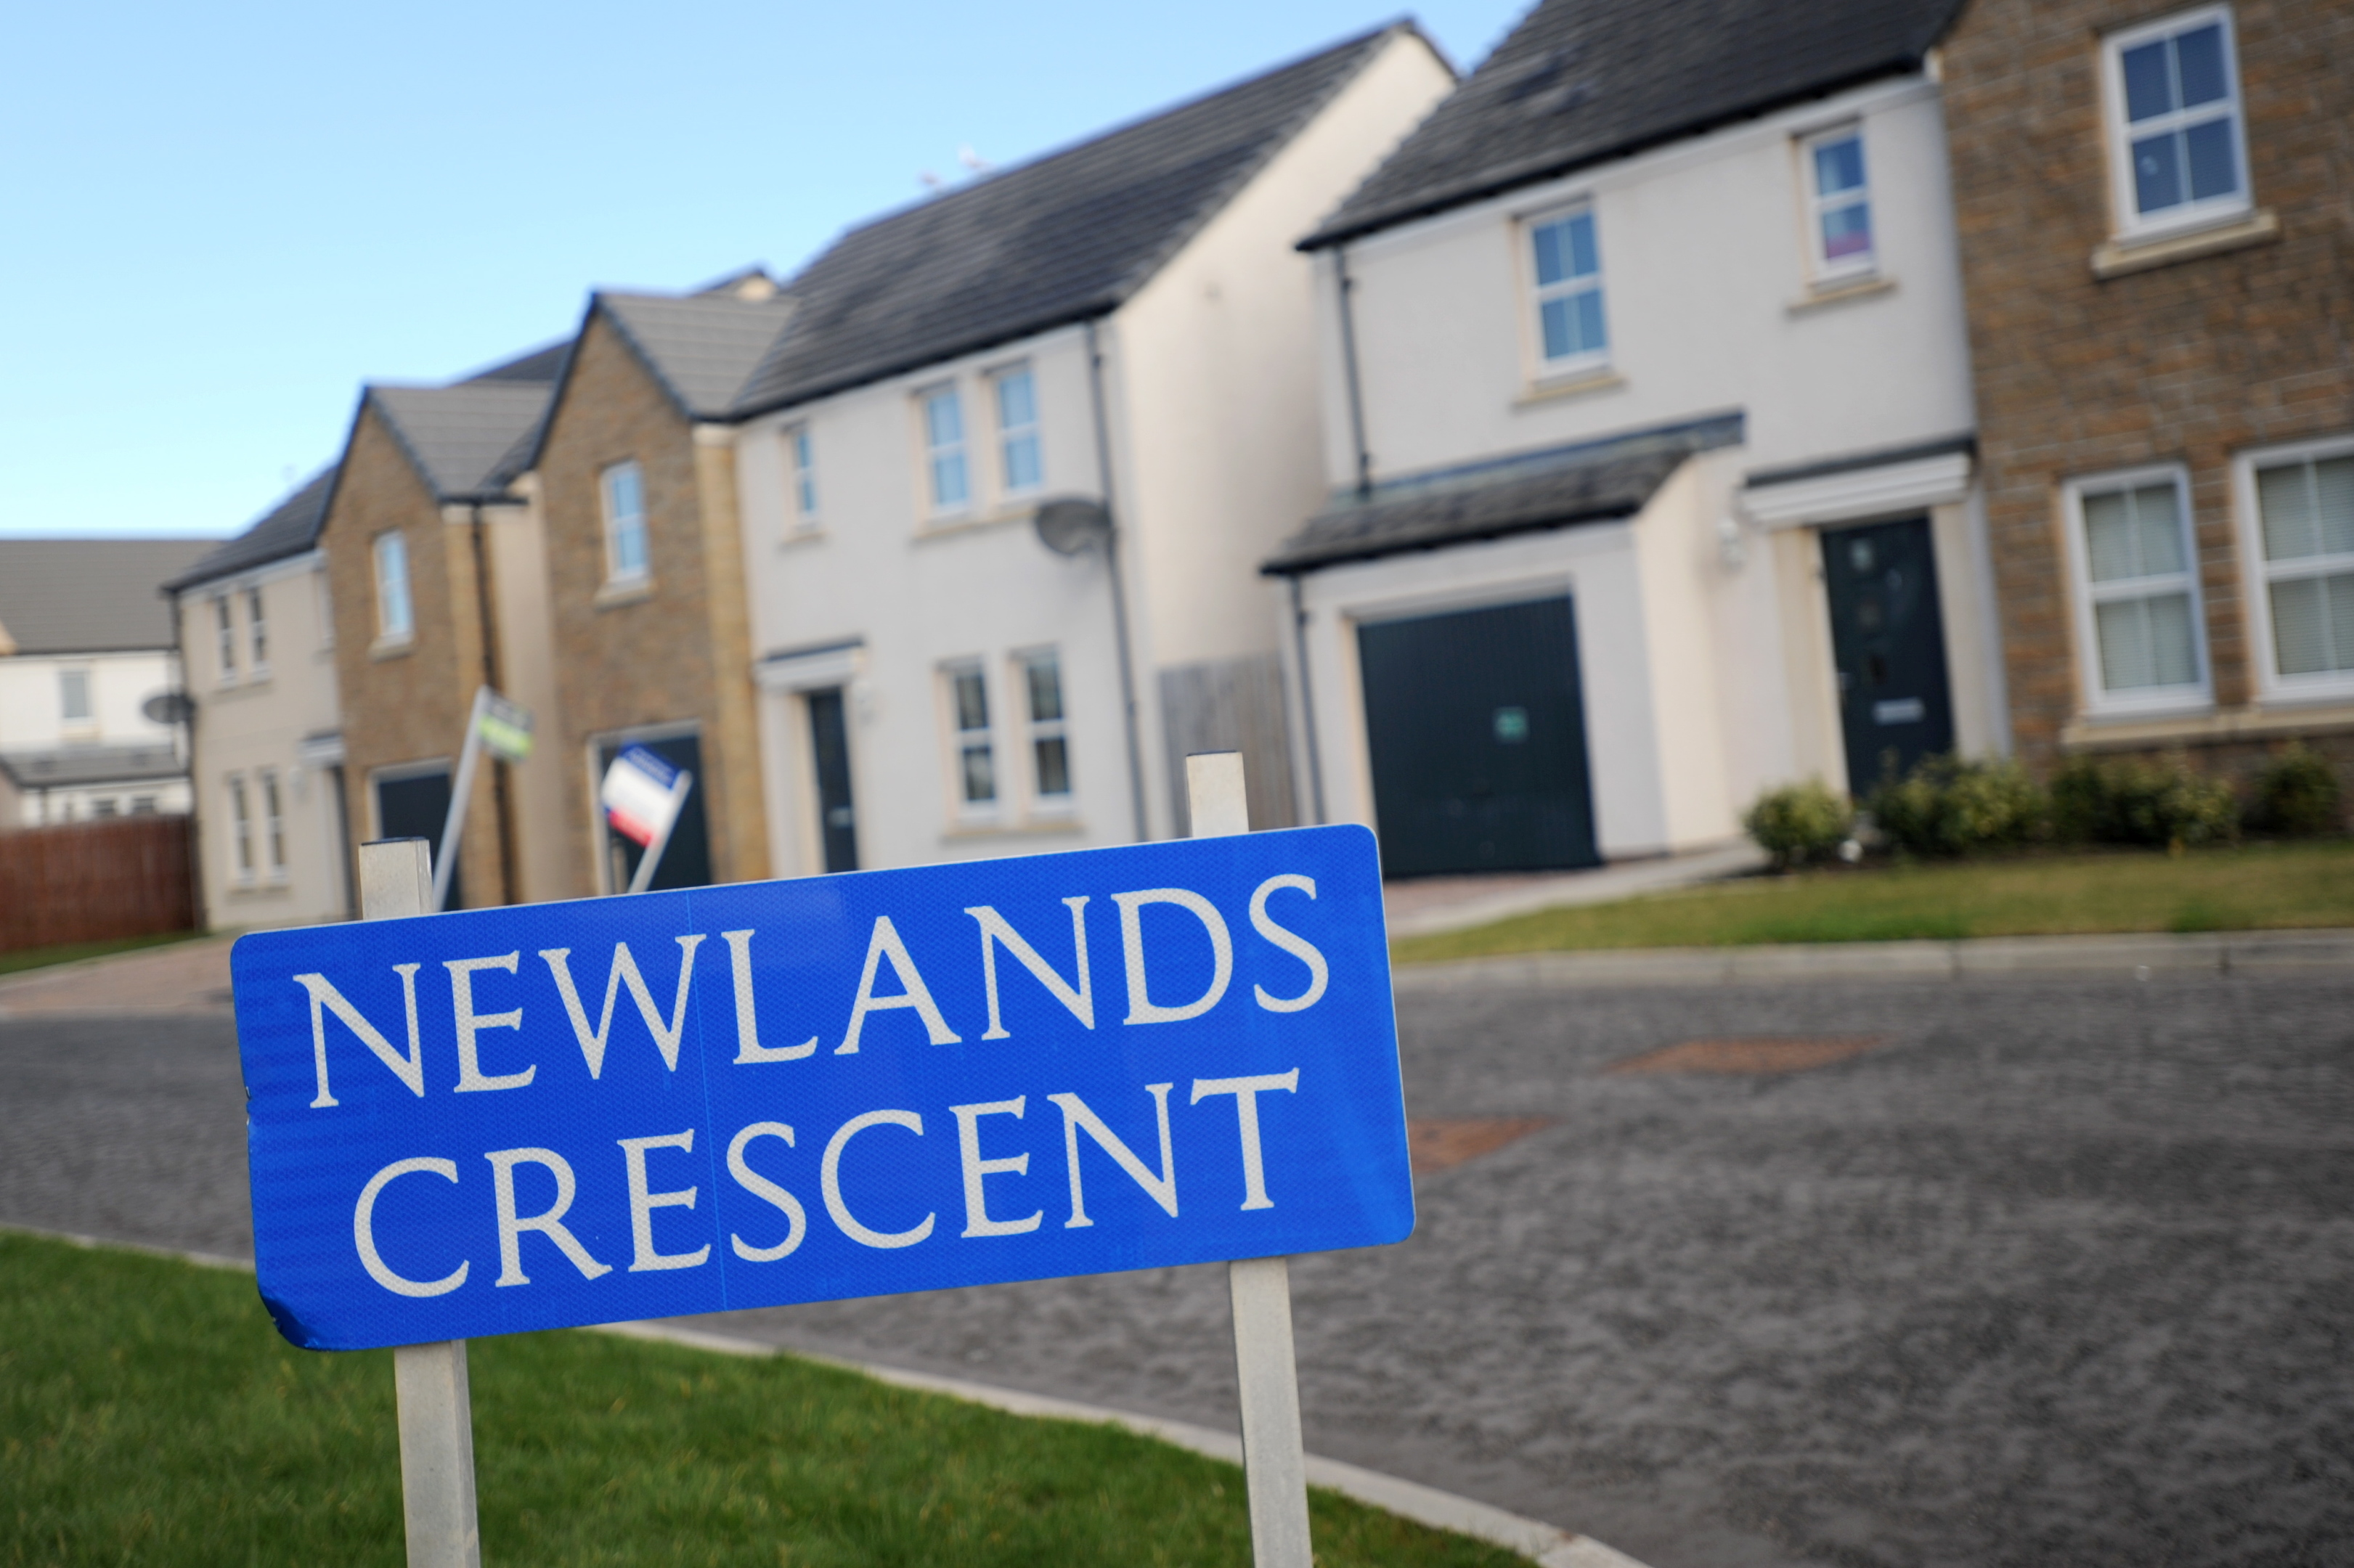 Hassle: Newlands Crescent is in both Cove and Broomhill, causing postal problems.